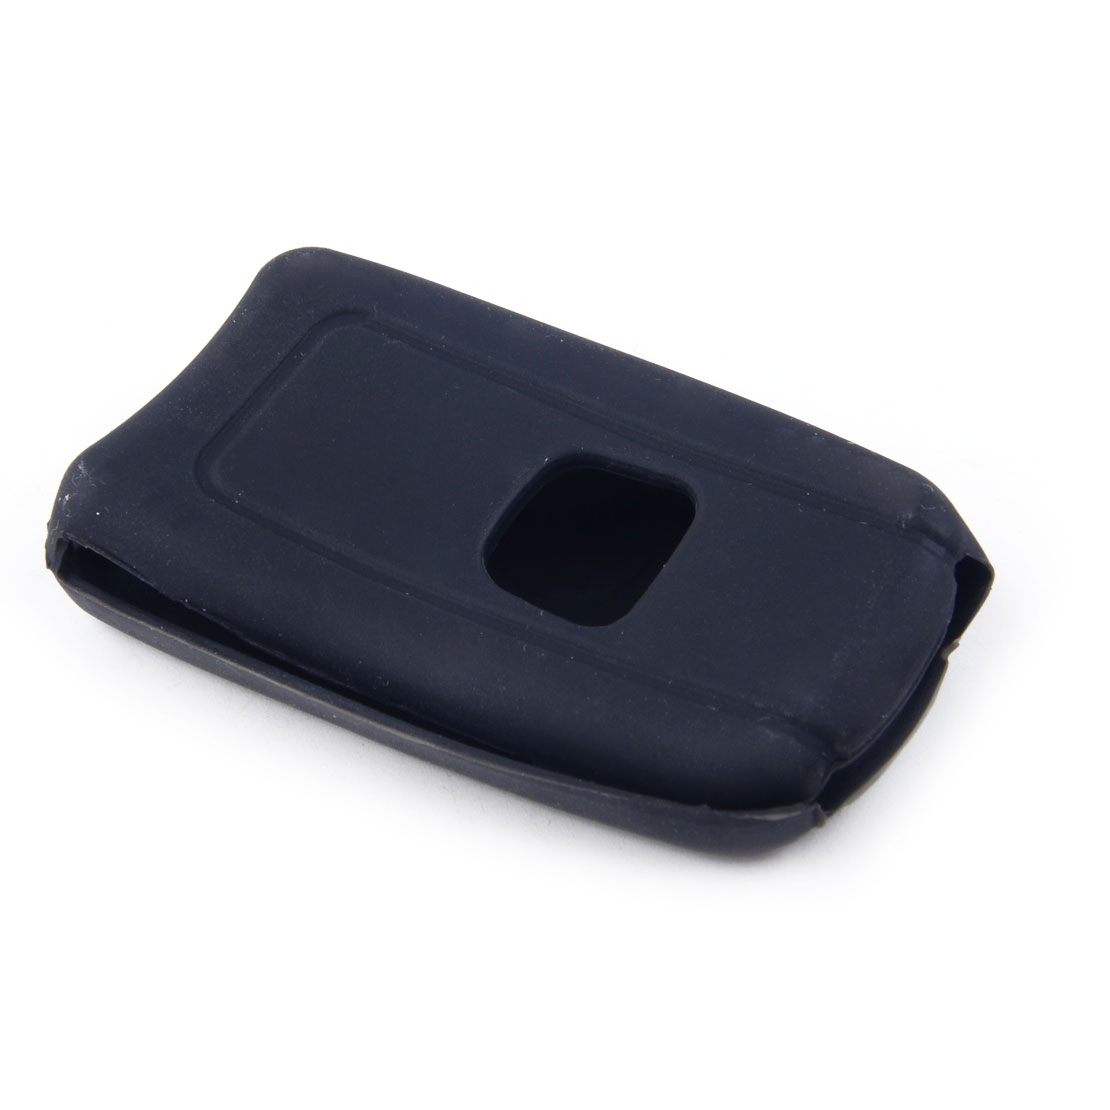 Silicone Remote Flip Key Fob Case Cover Fit For Acura MDX